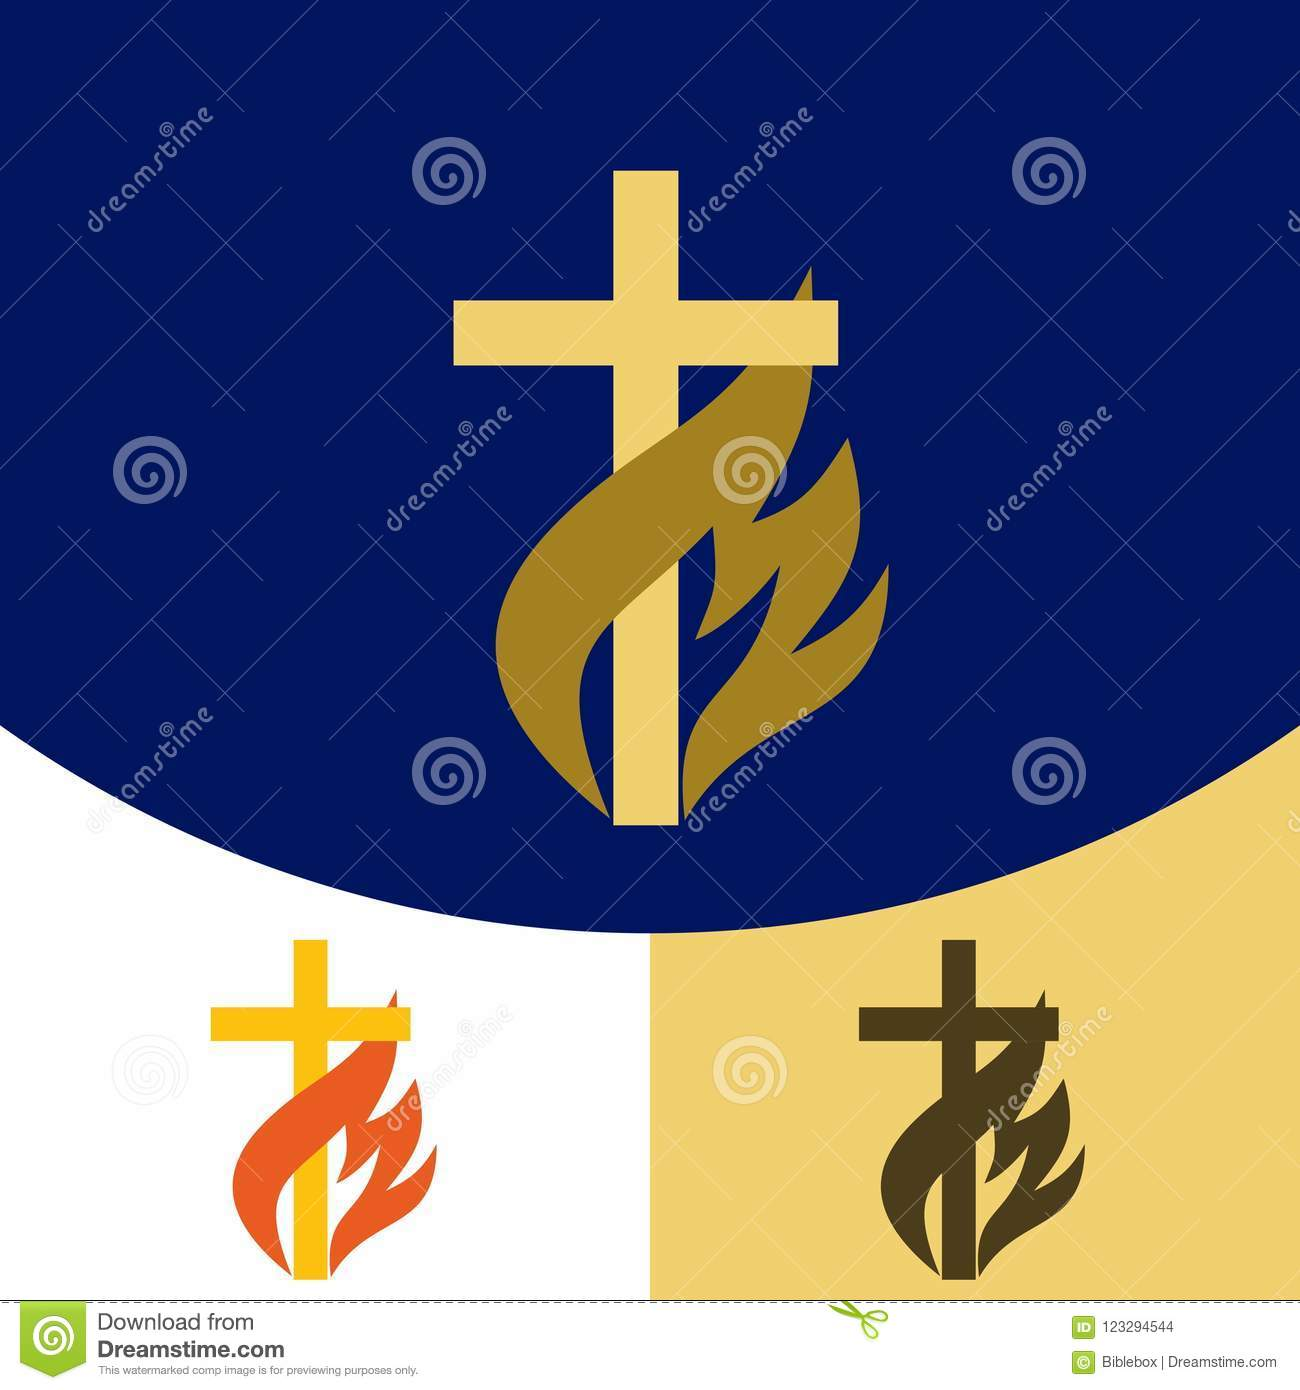 Church Logo Christian Symbols The Cross Of Jesus Christ The Flame